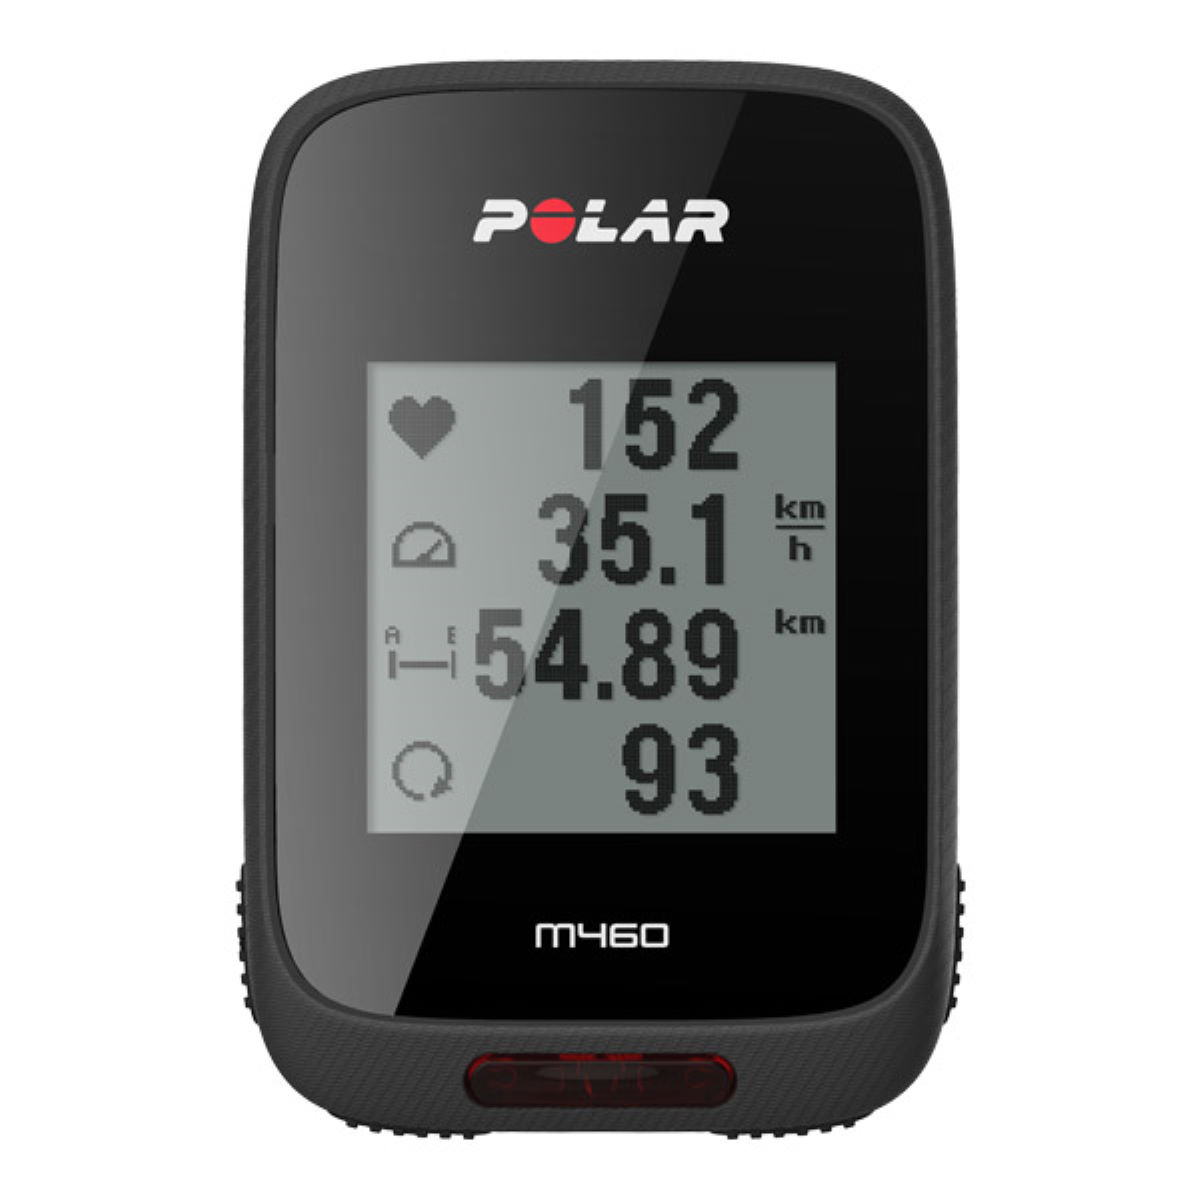 Polar m460 non hrm gps cycle computers black notset 90064757